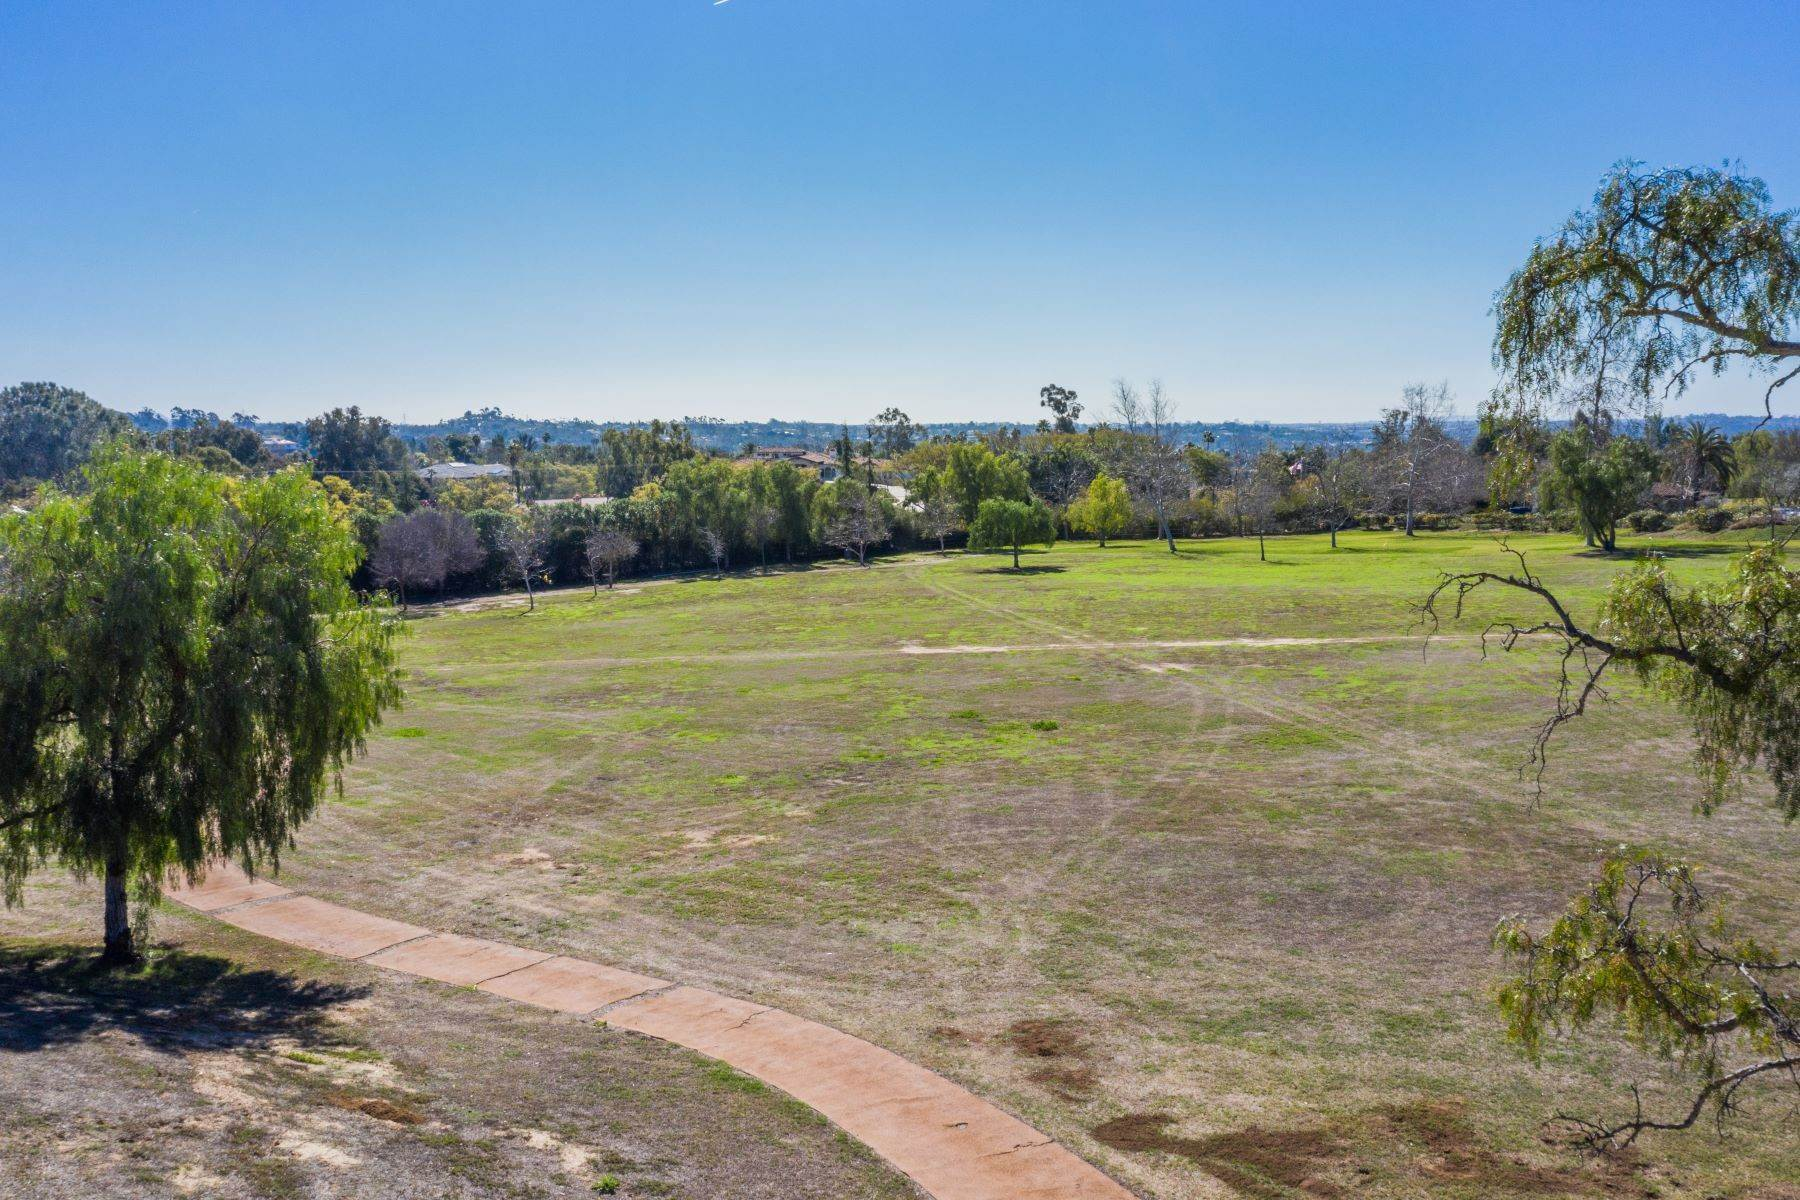 2. Land for Sale at 17048 El Mirador, Rancho Santa Fe, CA 92067 17048 El Mirador Rancho Santa Fe, California 92067 United States